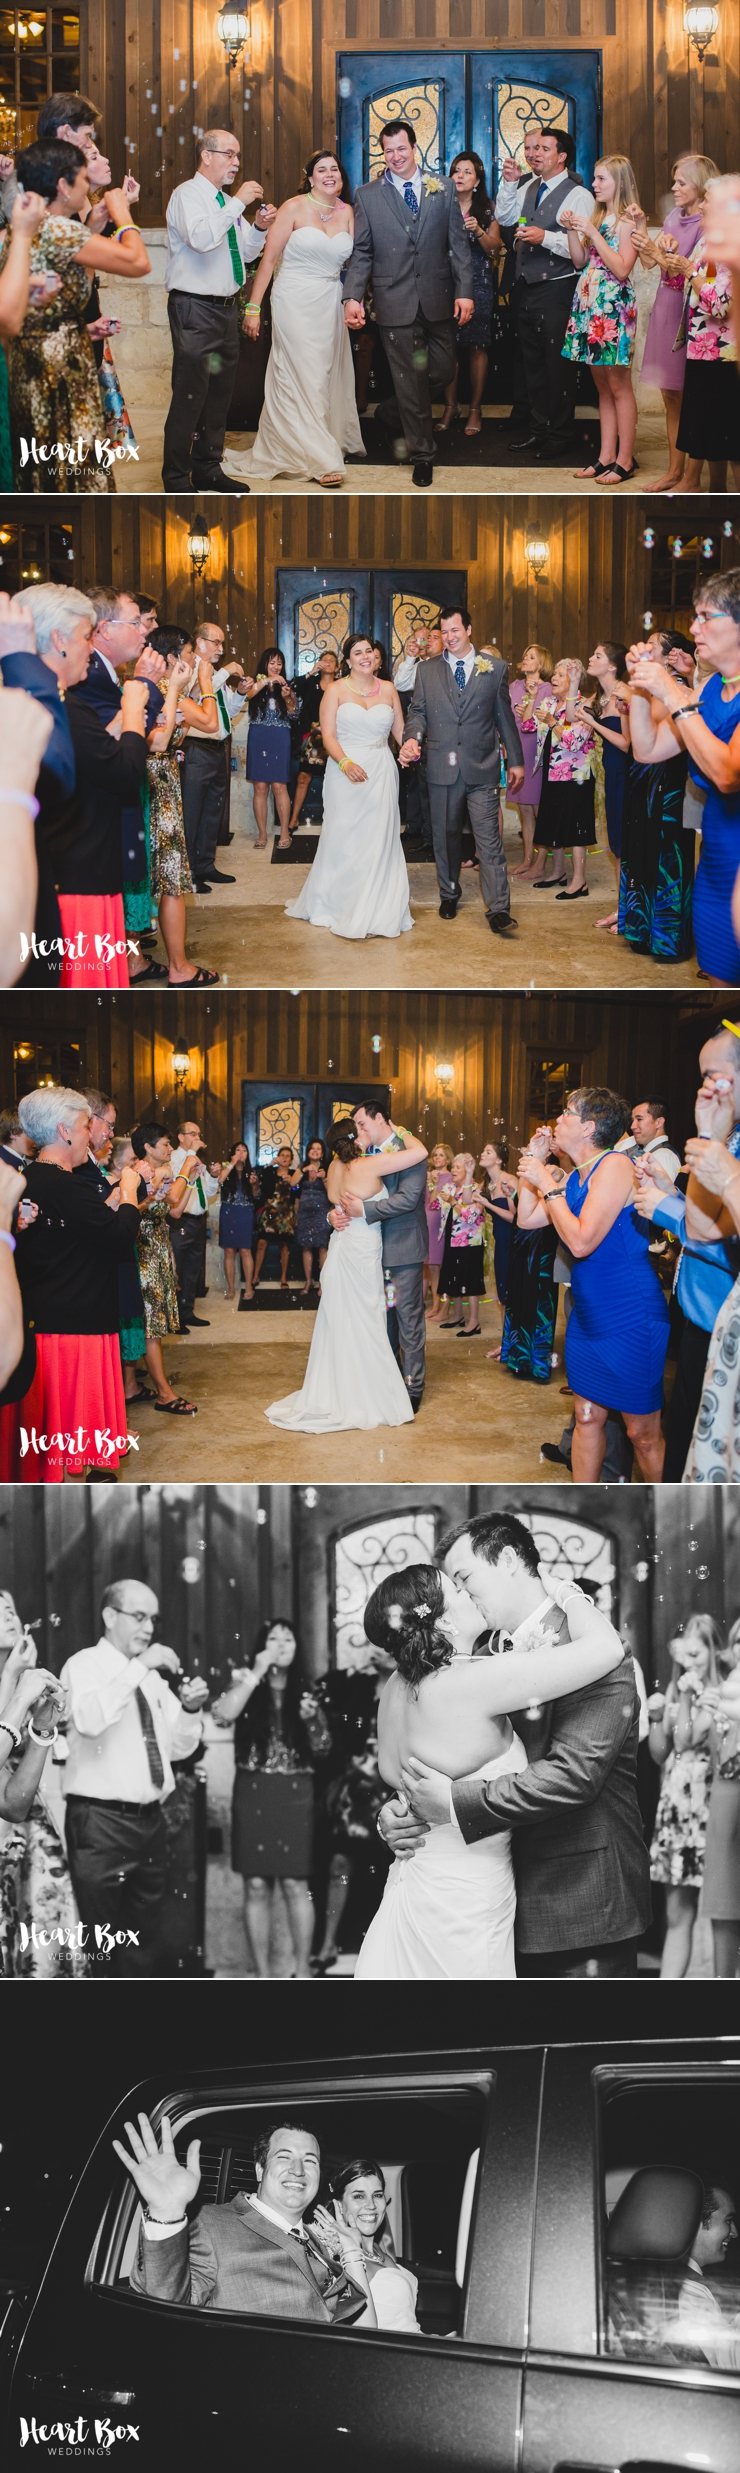 Waggoner Wedding Collages 22.jpg